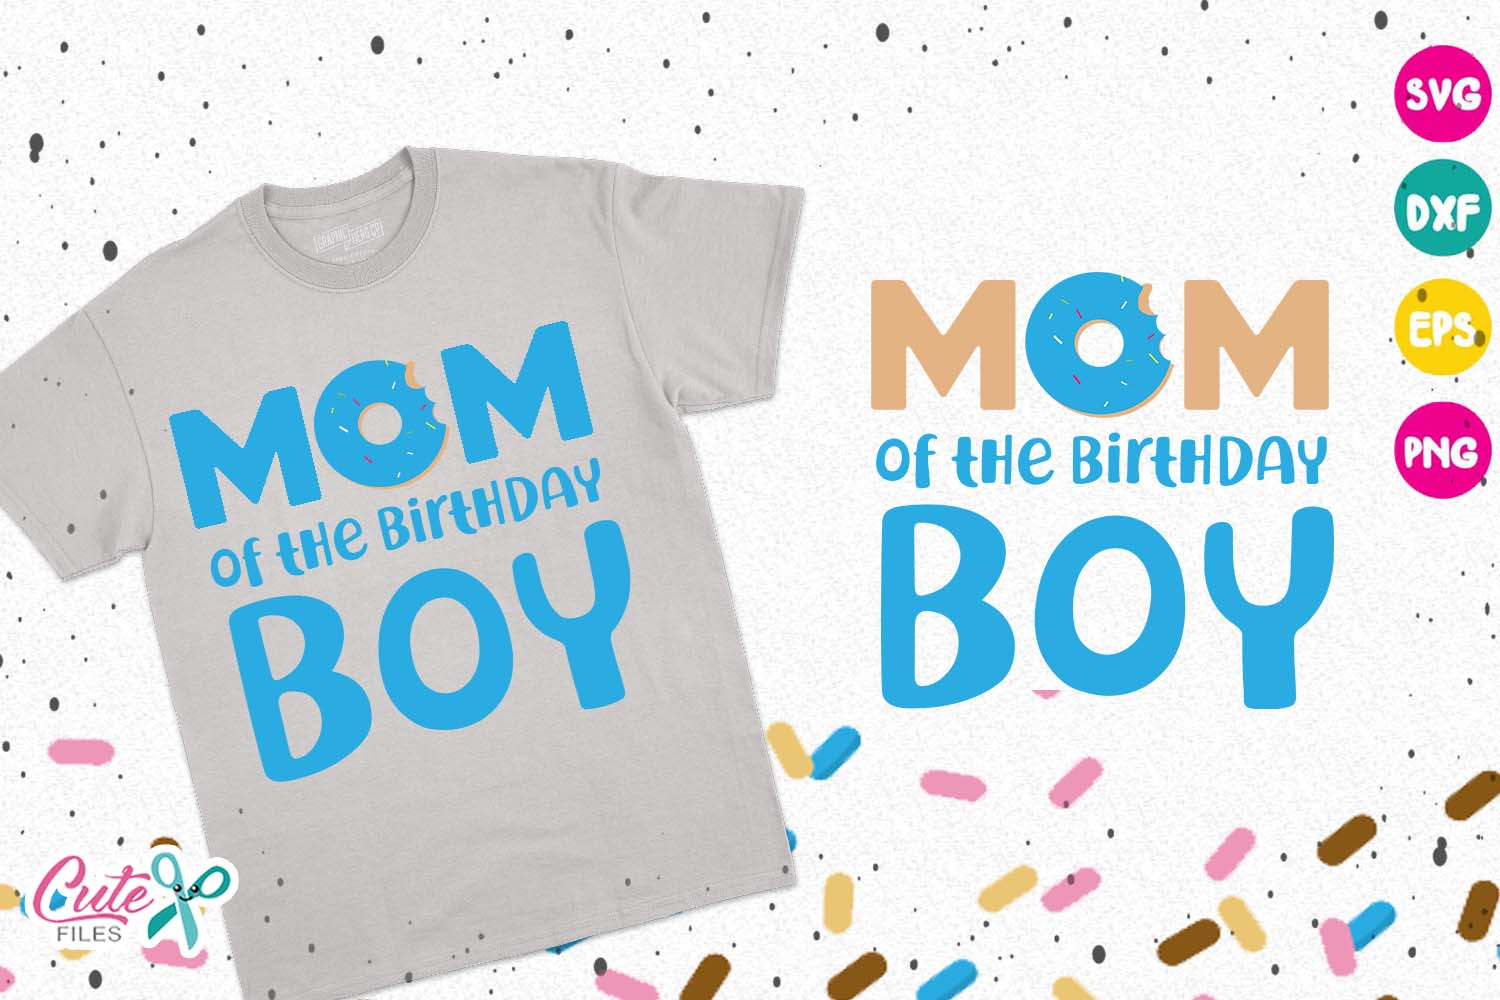 Mom Of The Birthday Boy Donut Svg Graphic By Cute Files